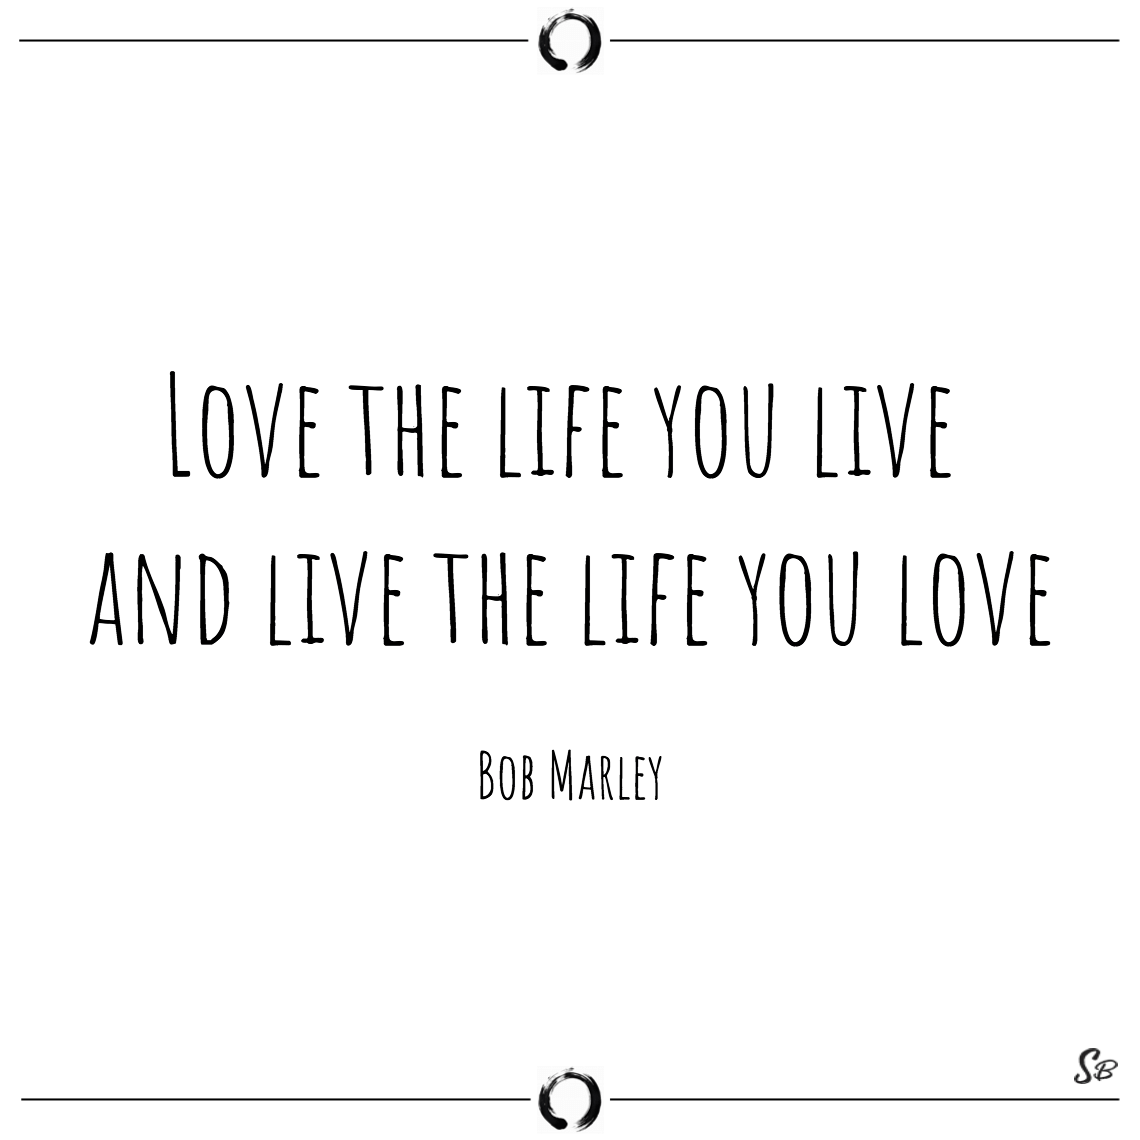 Love the life you live and live the life you love bob marley